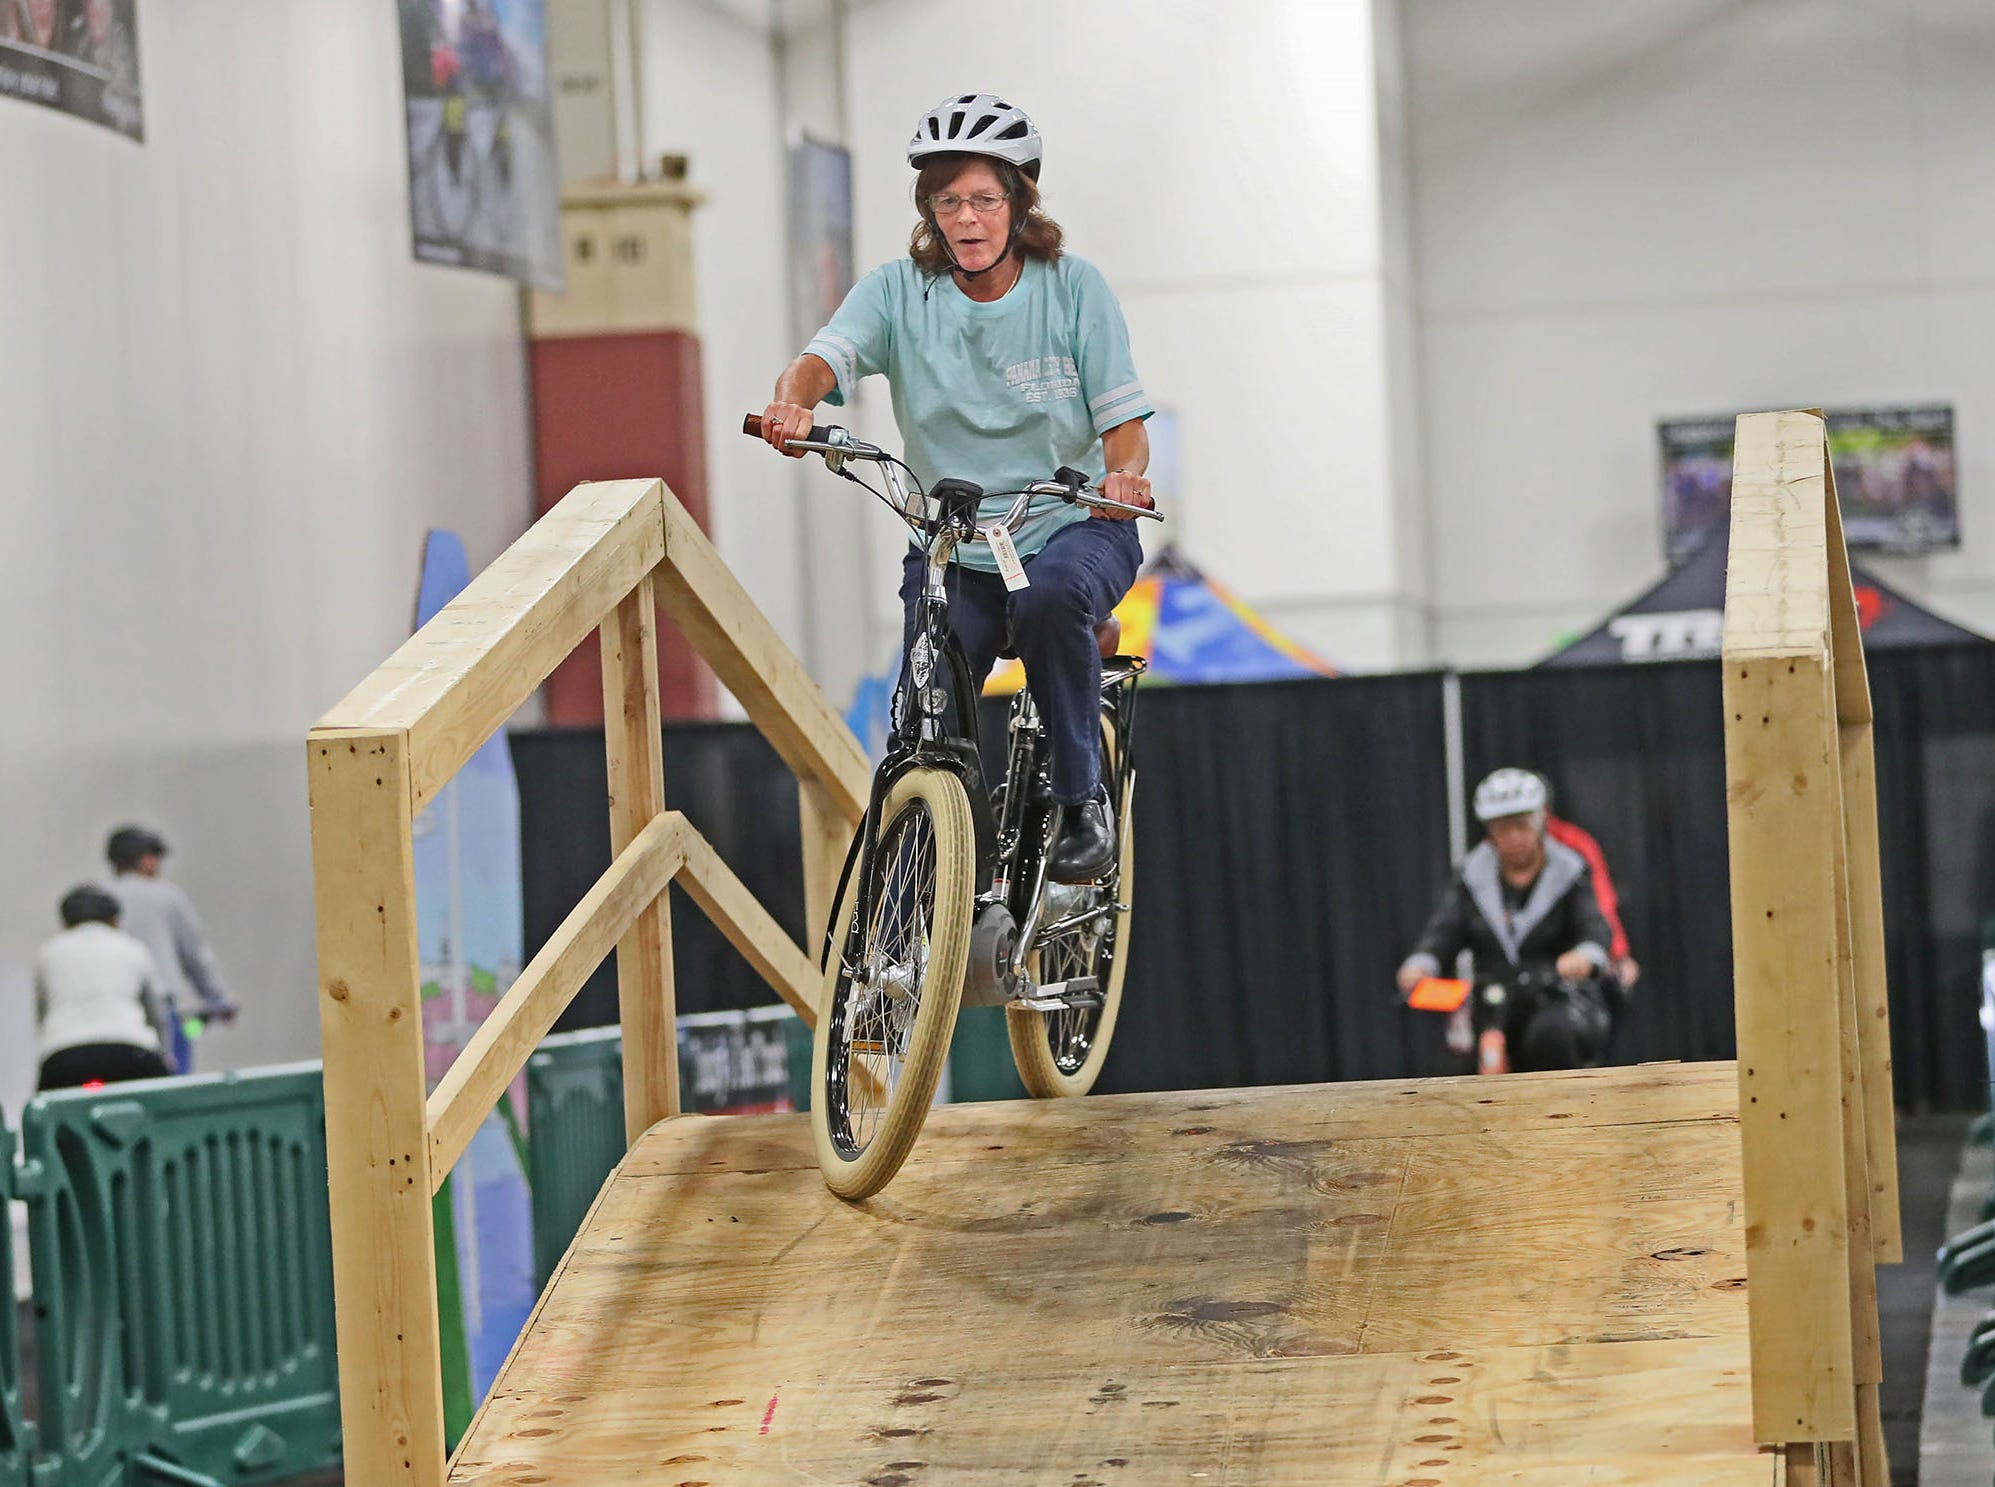 Kimberly Ferrie of Milwaukee tests out an eBike on the electric bike test track.  The bikes have an electric motor and battery in additon to pedal power. The electric motor can assist powering a rider a little or a lot depending the rider's preference.